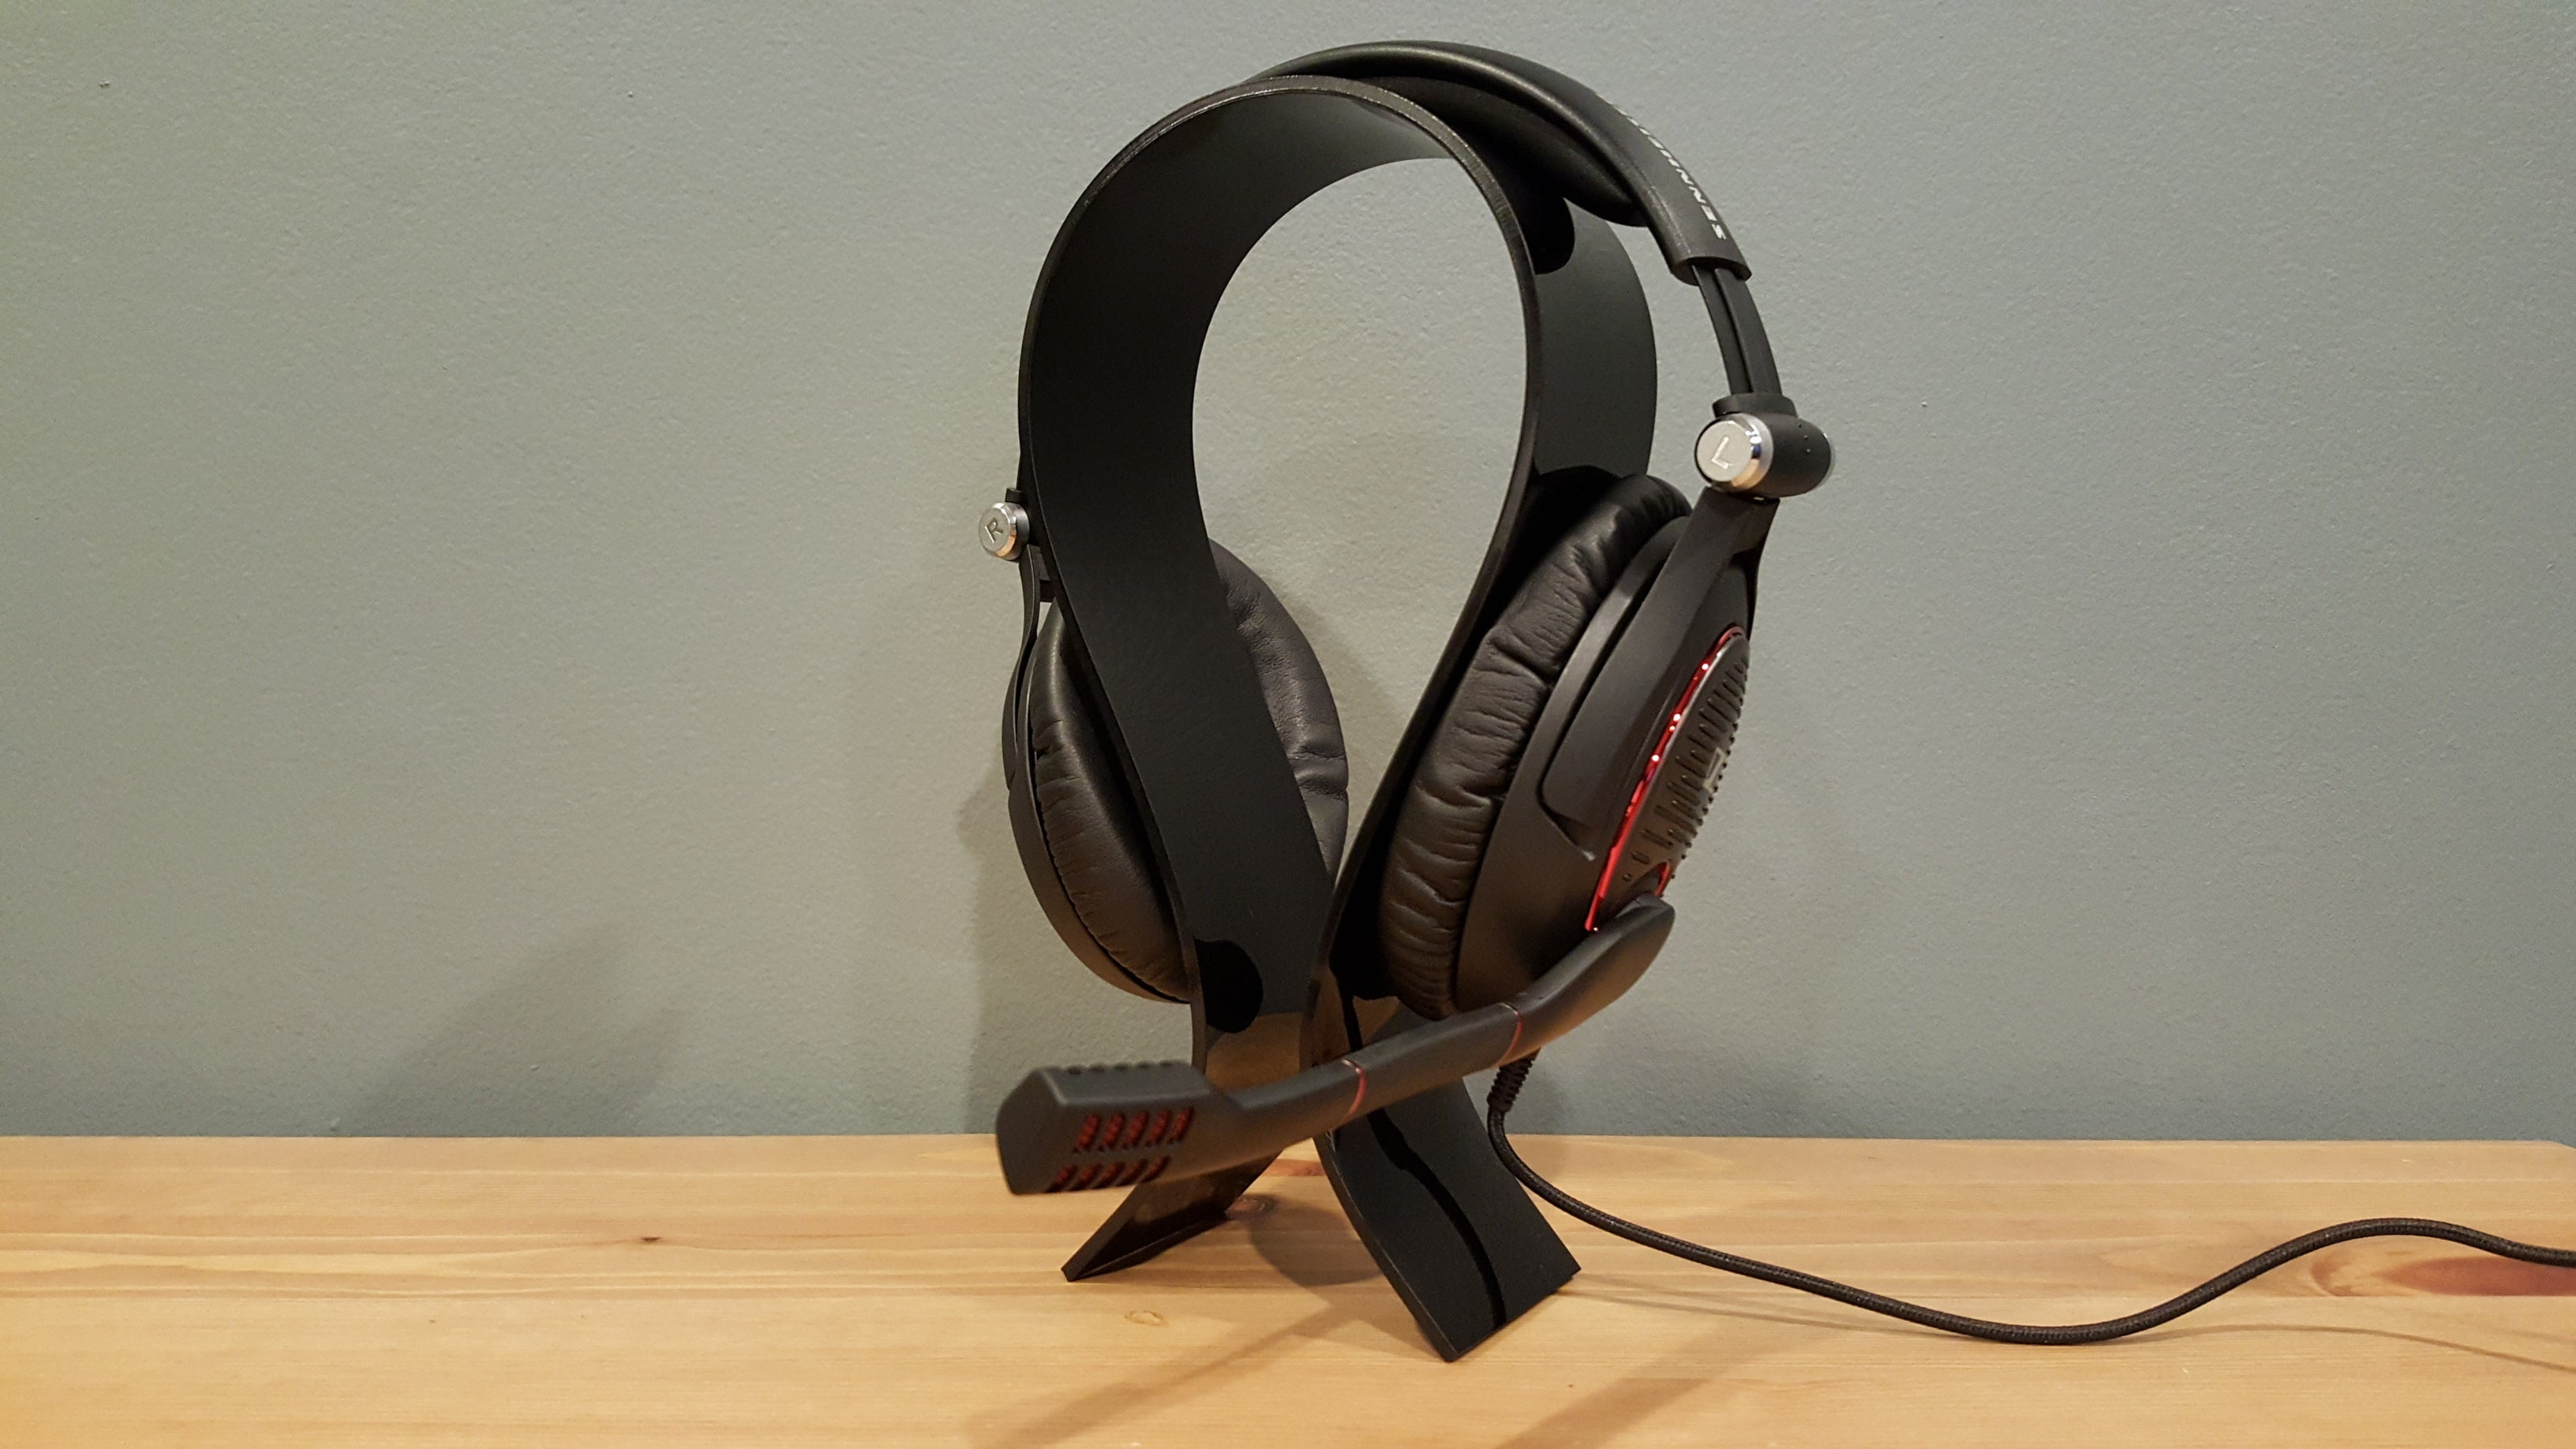 Sennheiser Game Zero Review This Headsets Sound Quality Justifies Wiring A Touch Tone Pad To Any Antique Telephone Phone Conversion Its Price Pcworld